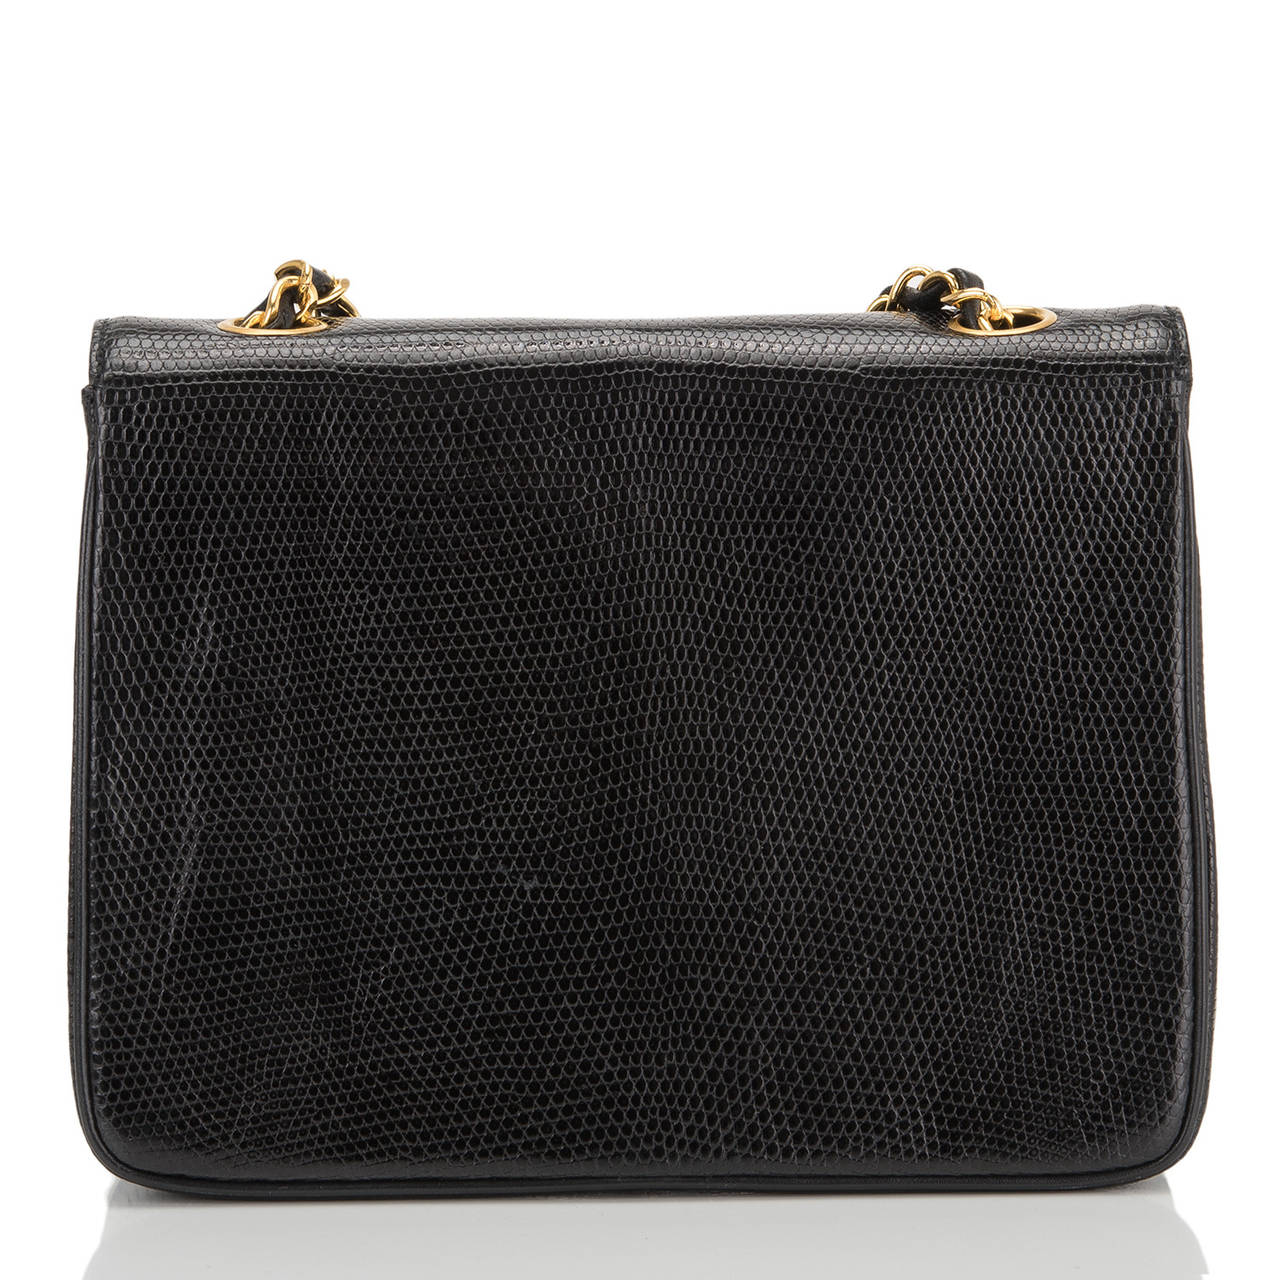 Chanel Vintage Black Lizard Large Mini Flap Bag In Excellent Condition For Sale In New York, NY